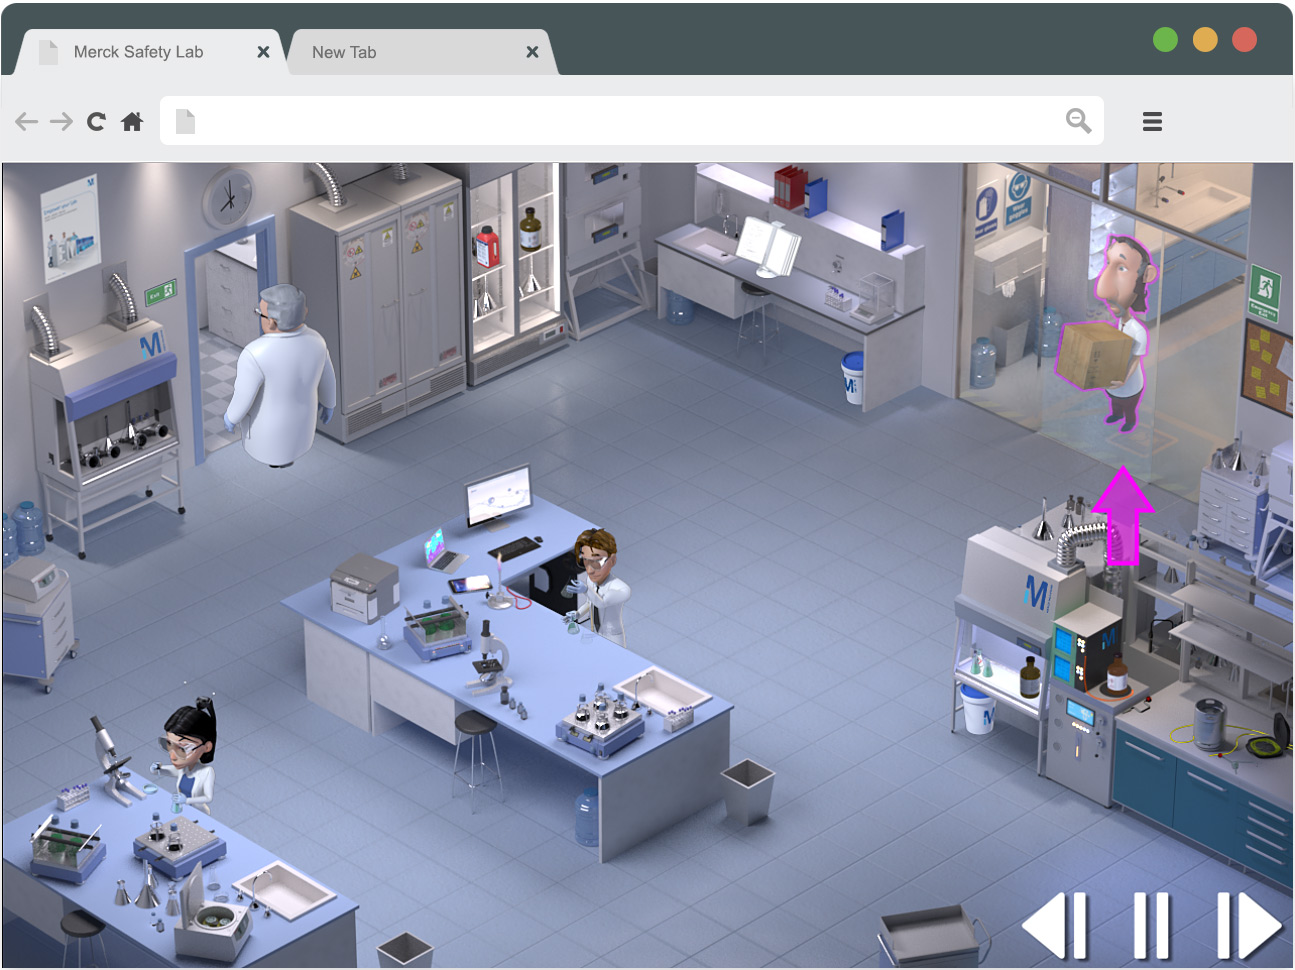 3d-io merck safety game 3d-room